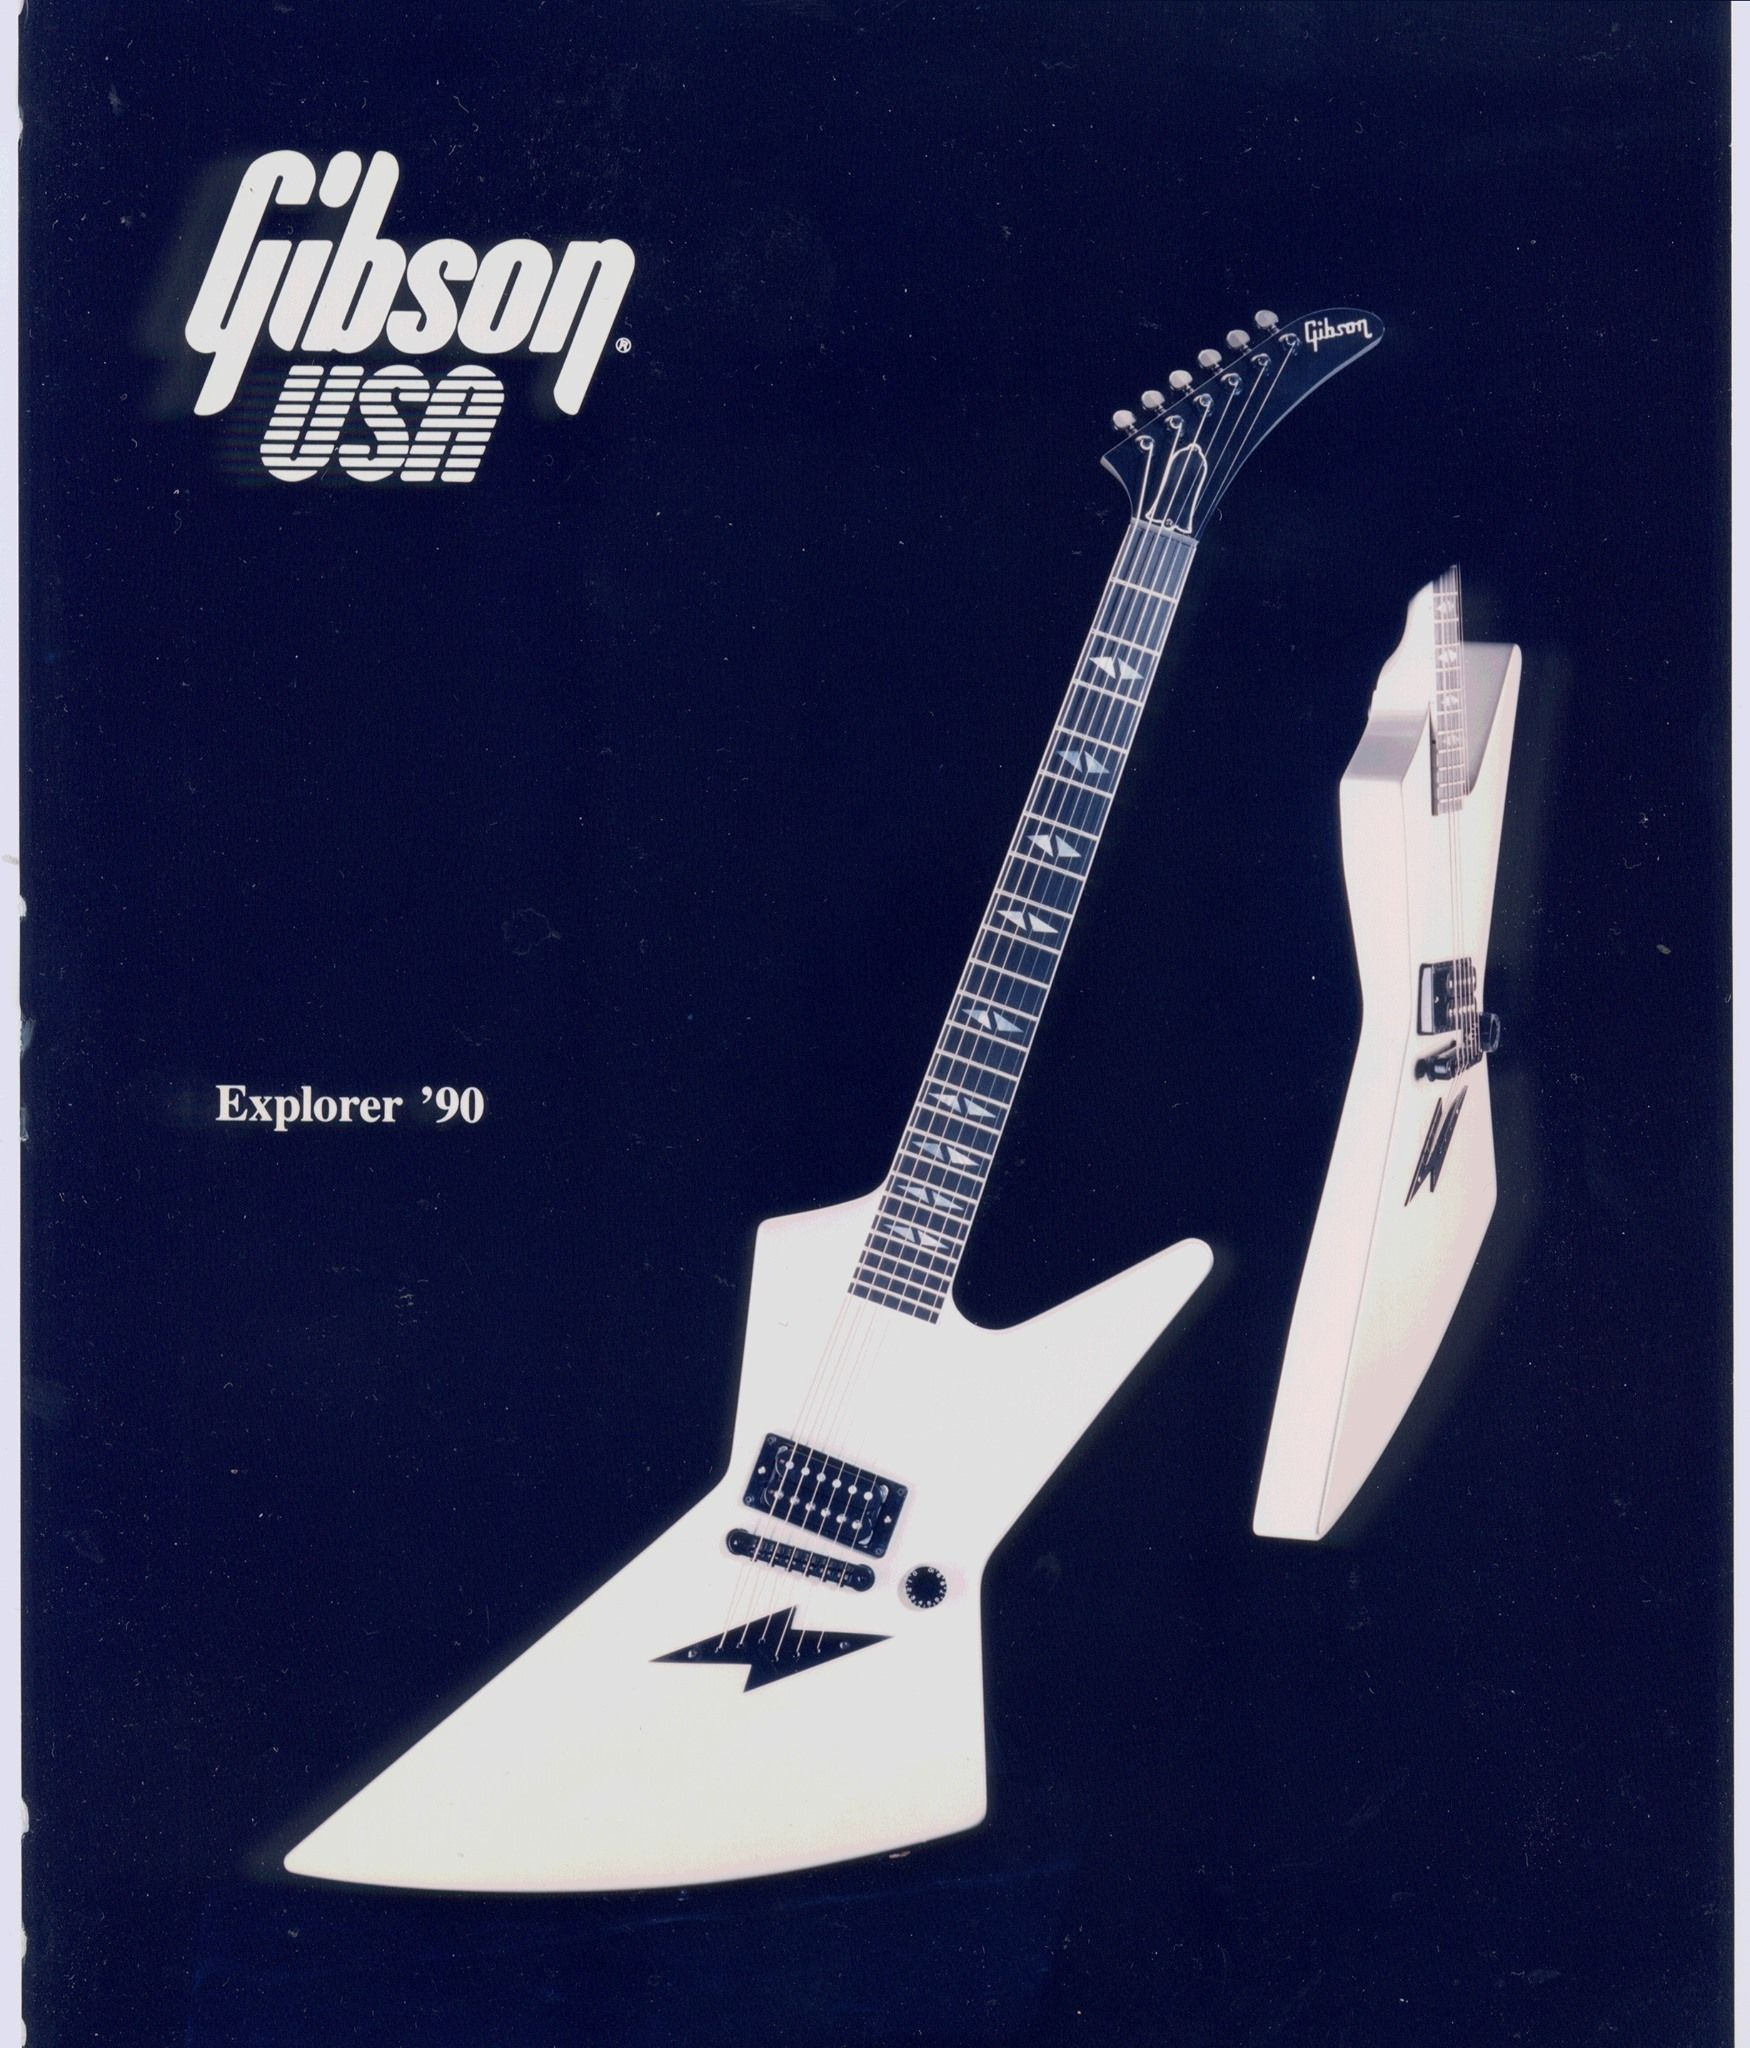 Gibson Explorer Rock Stars Electric Guitars Band Quotes Bass Instruments Tools